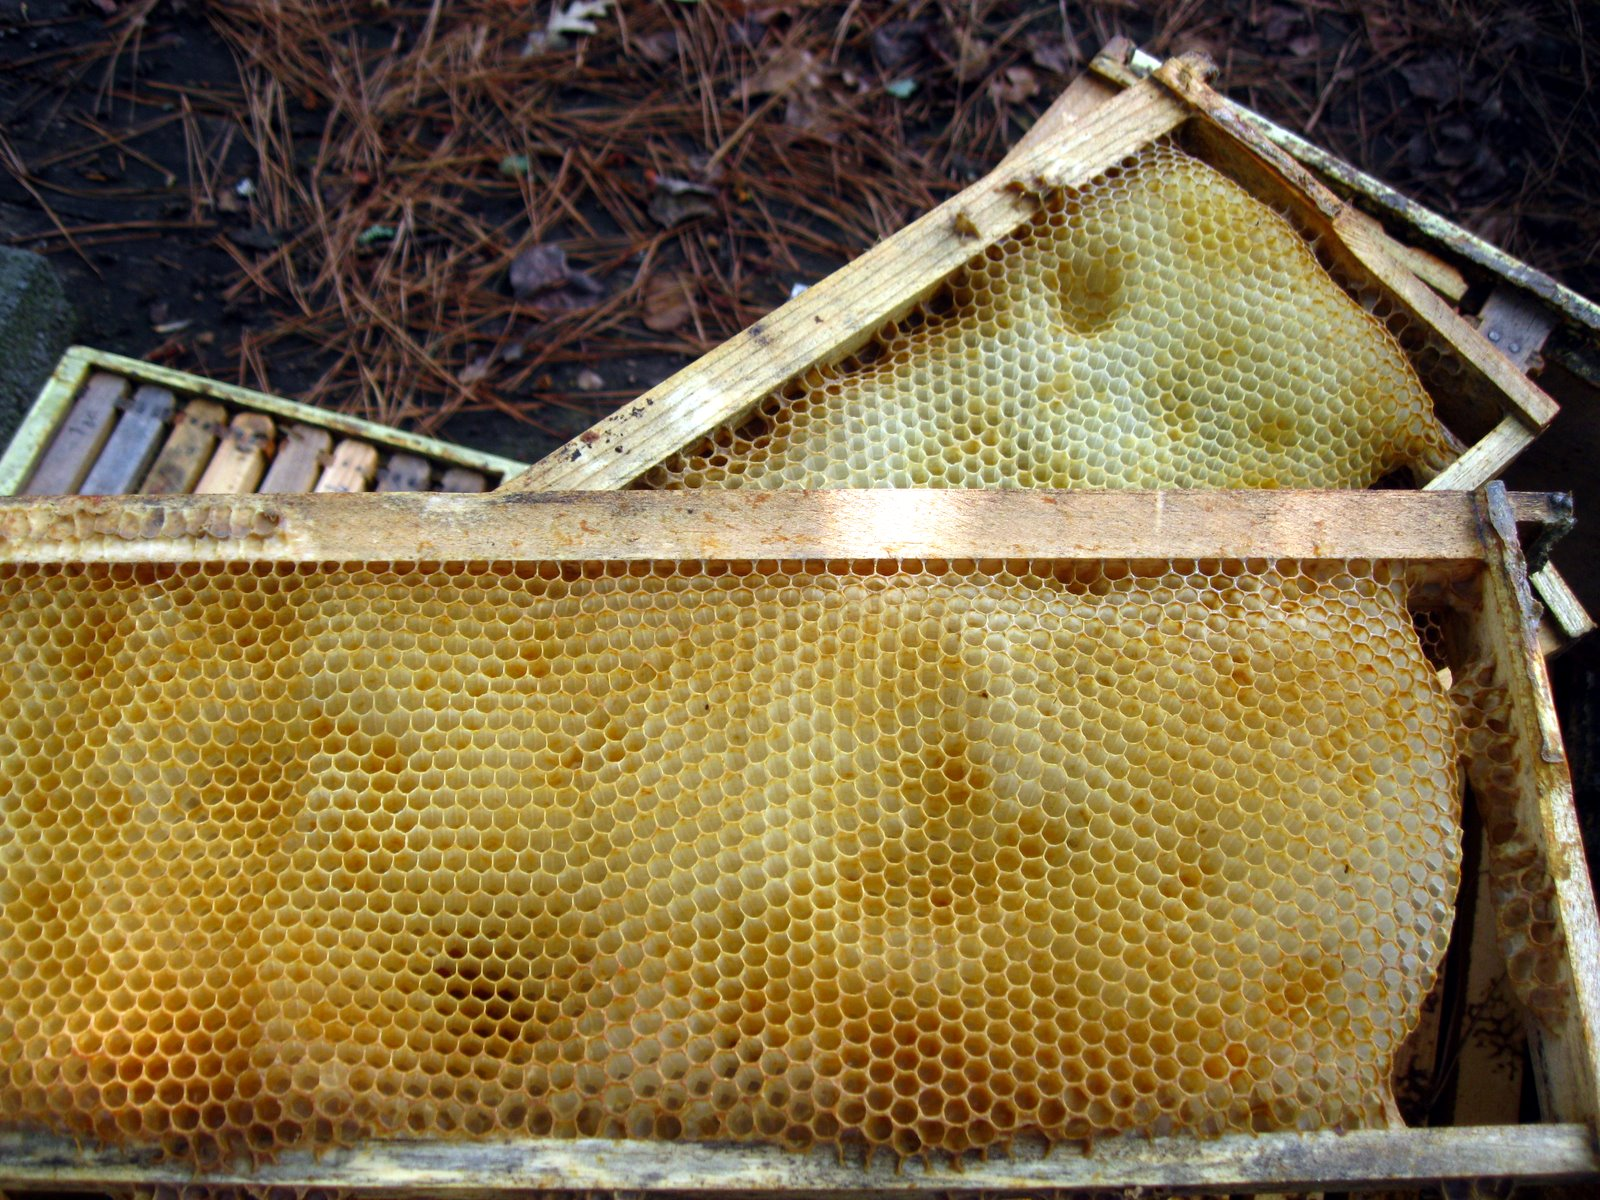 linda u0027s bees absconding vs colony collapse disorder